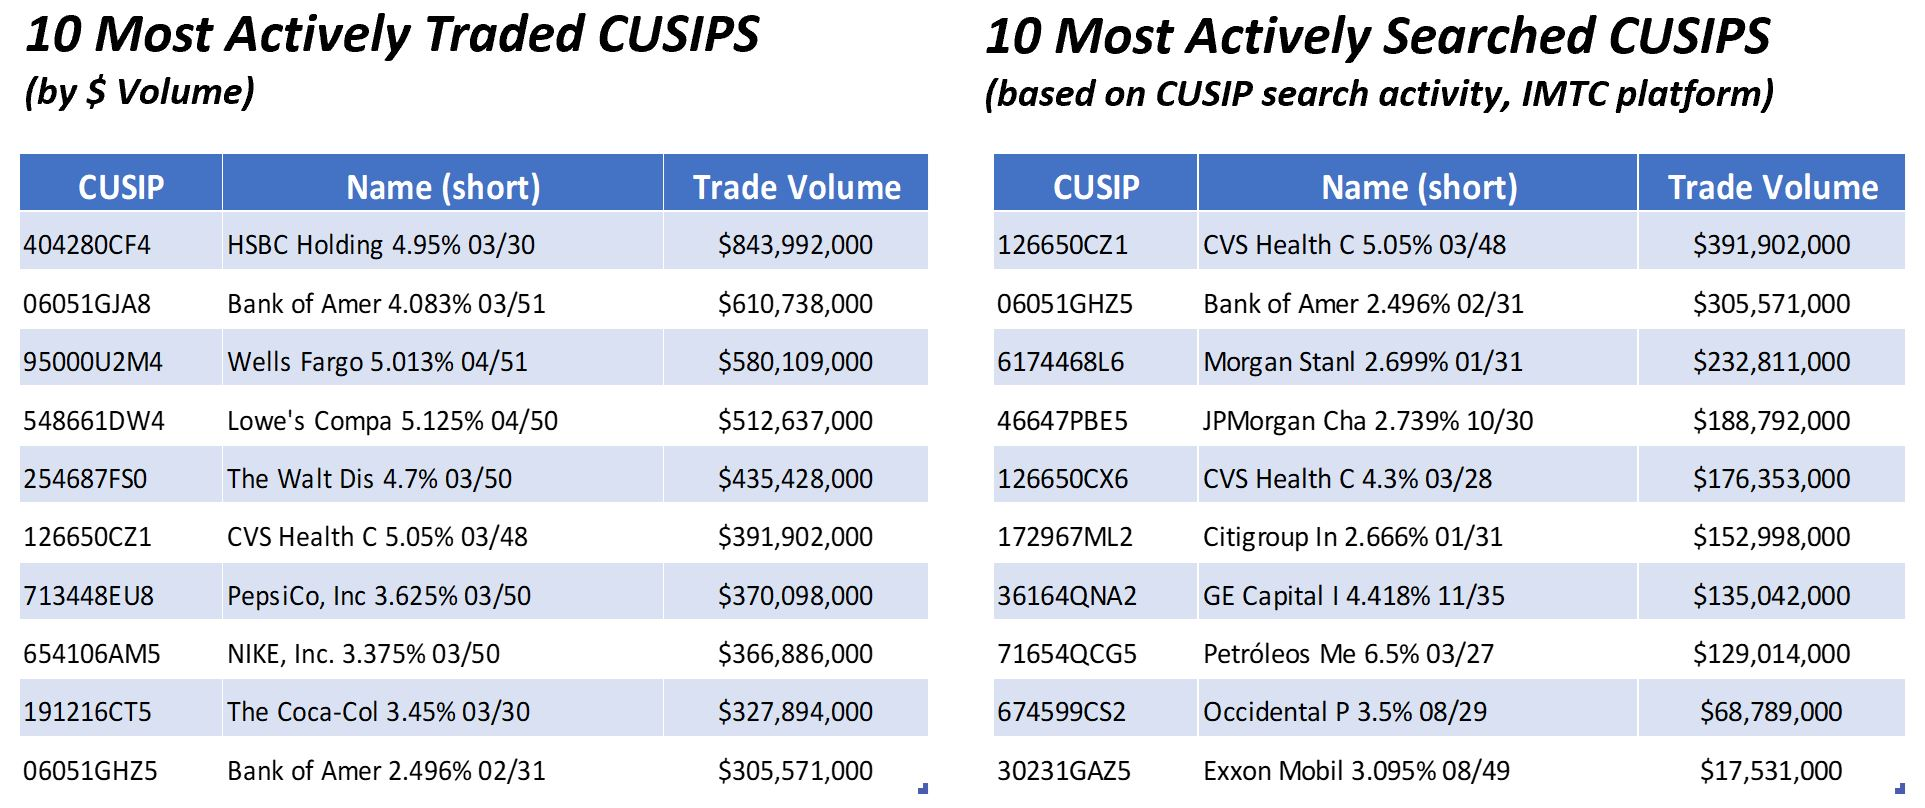 Most Active CUSIPS